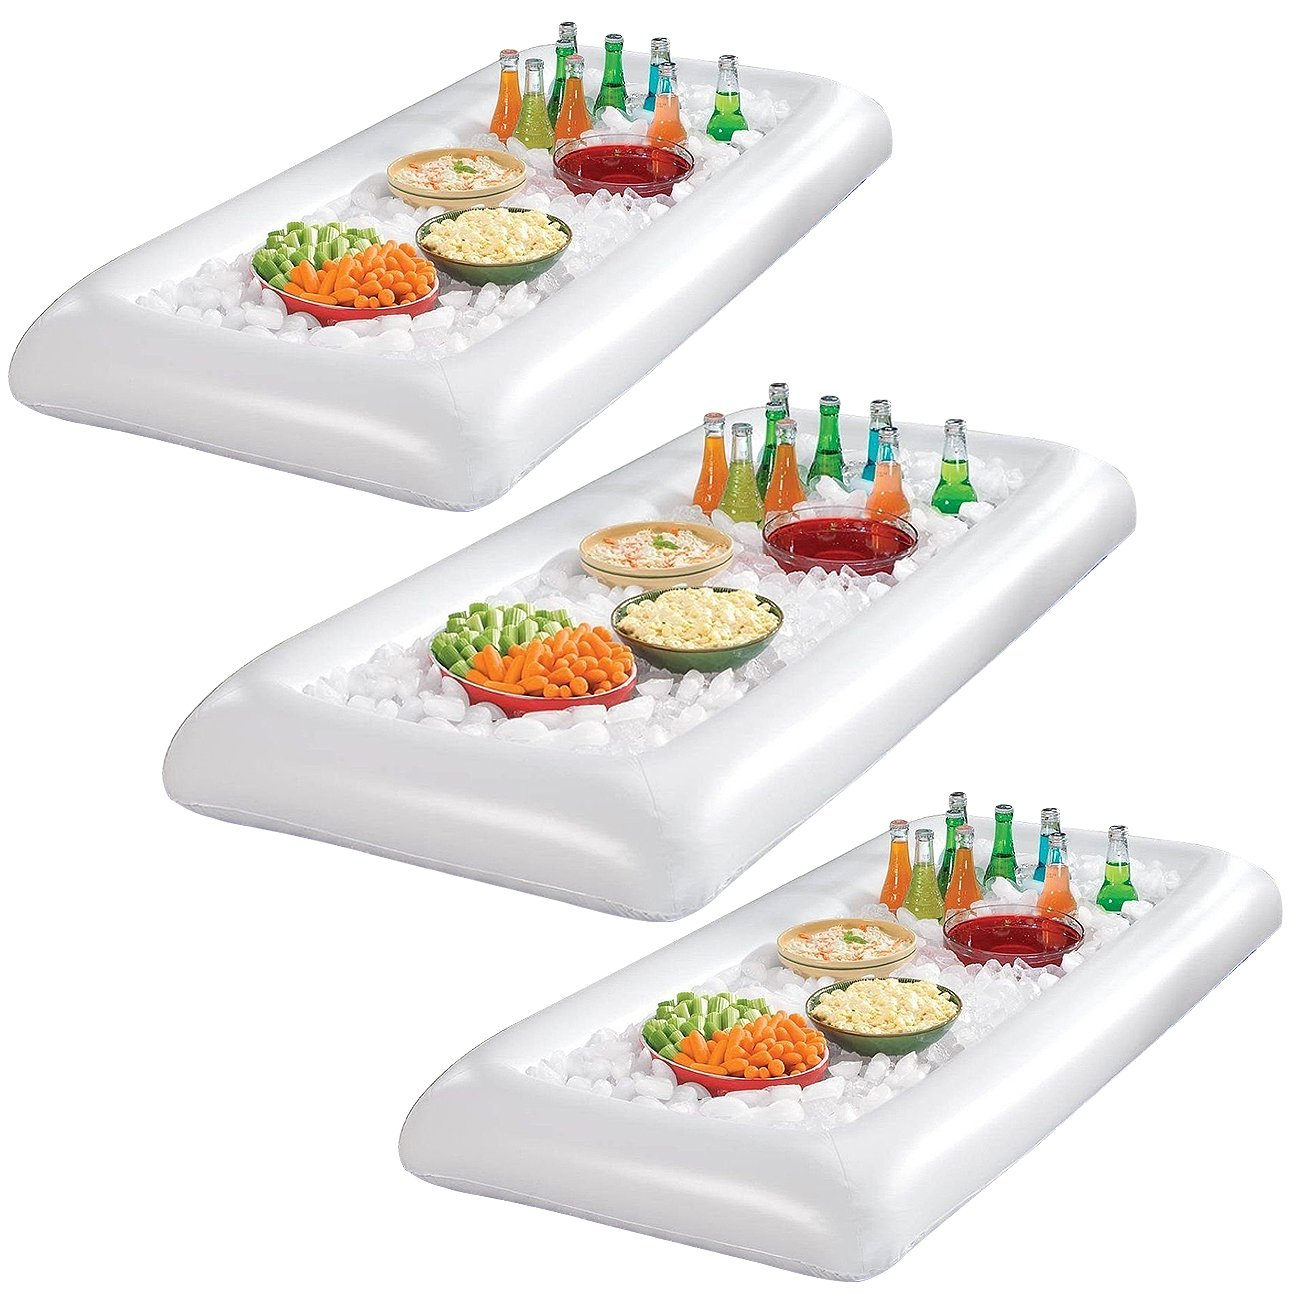 Sorbus Inflatable Serving Bar Salad with Drain Plug Ice Tray Food Drink Containers - BBQ Picnic Pool Party Supplies Buffet Luau Cooler (3 Salad Bars) by Sorbus